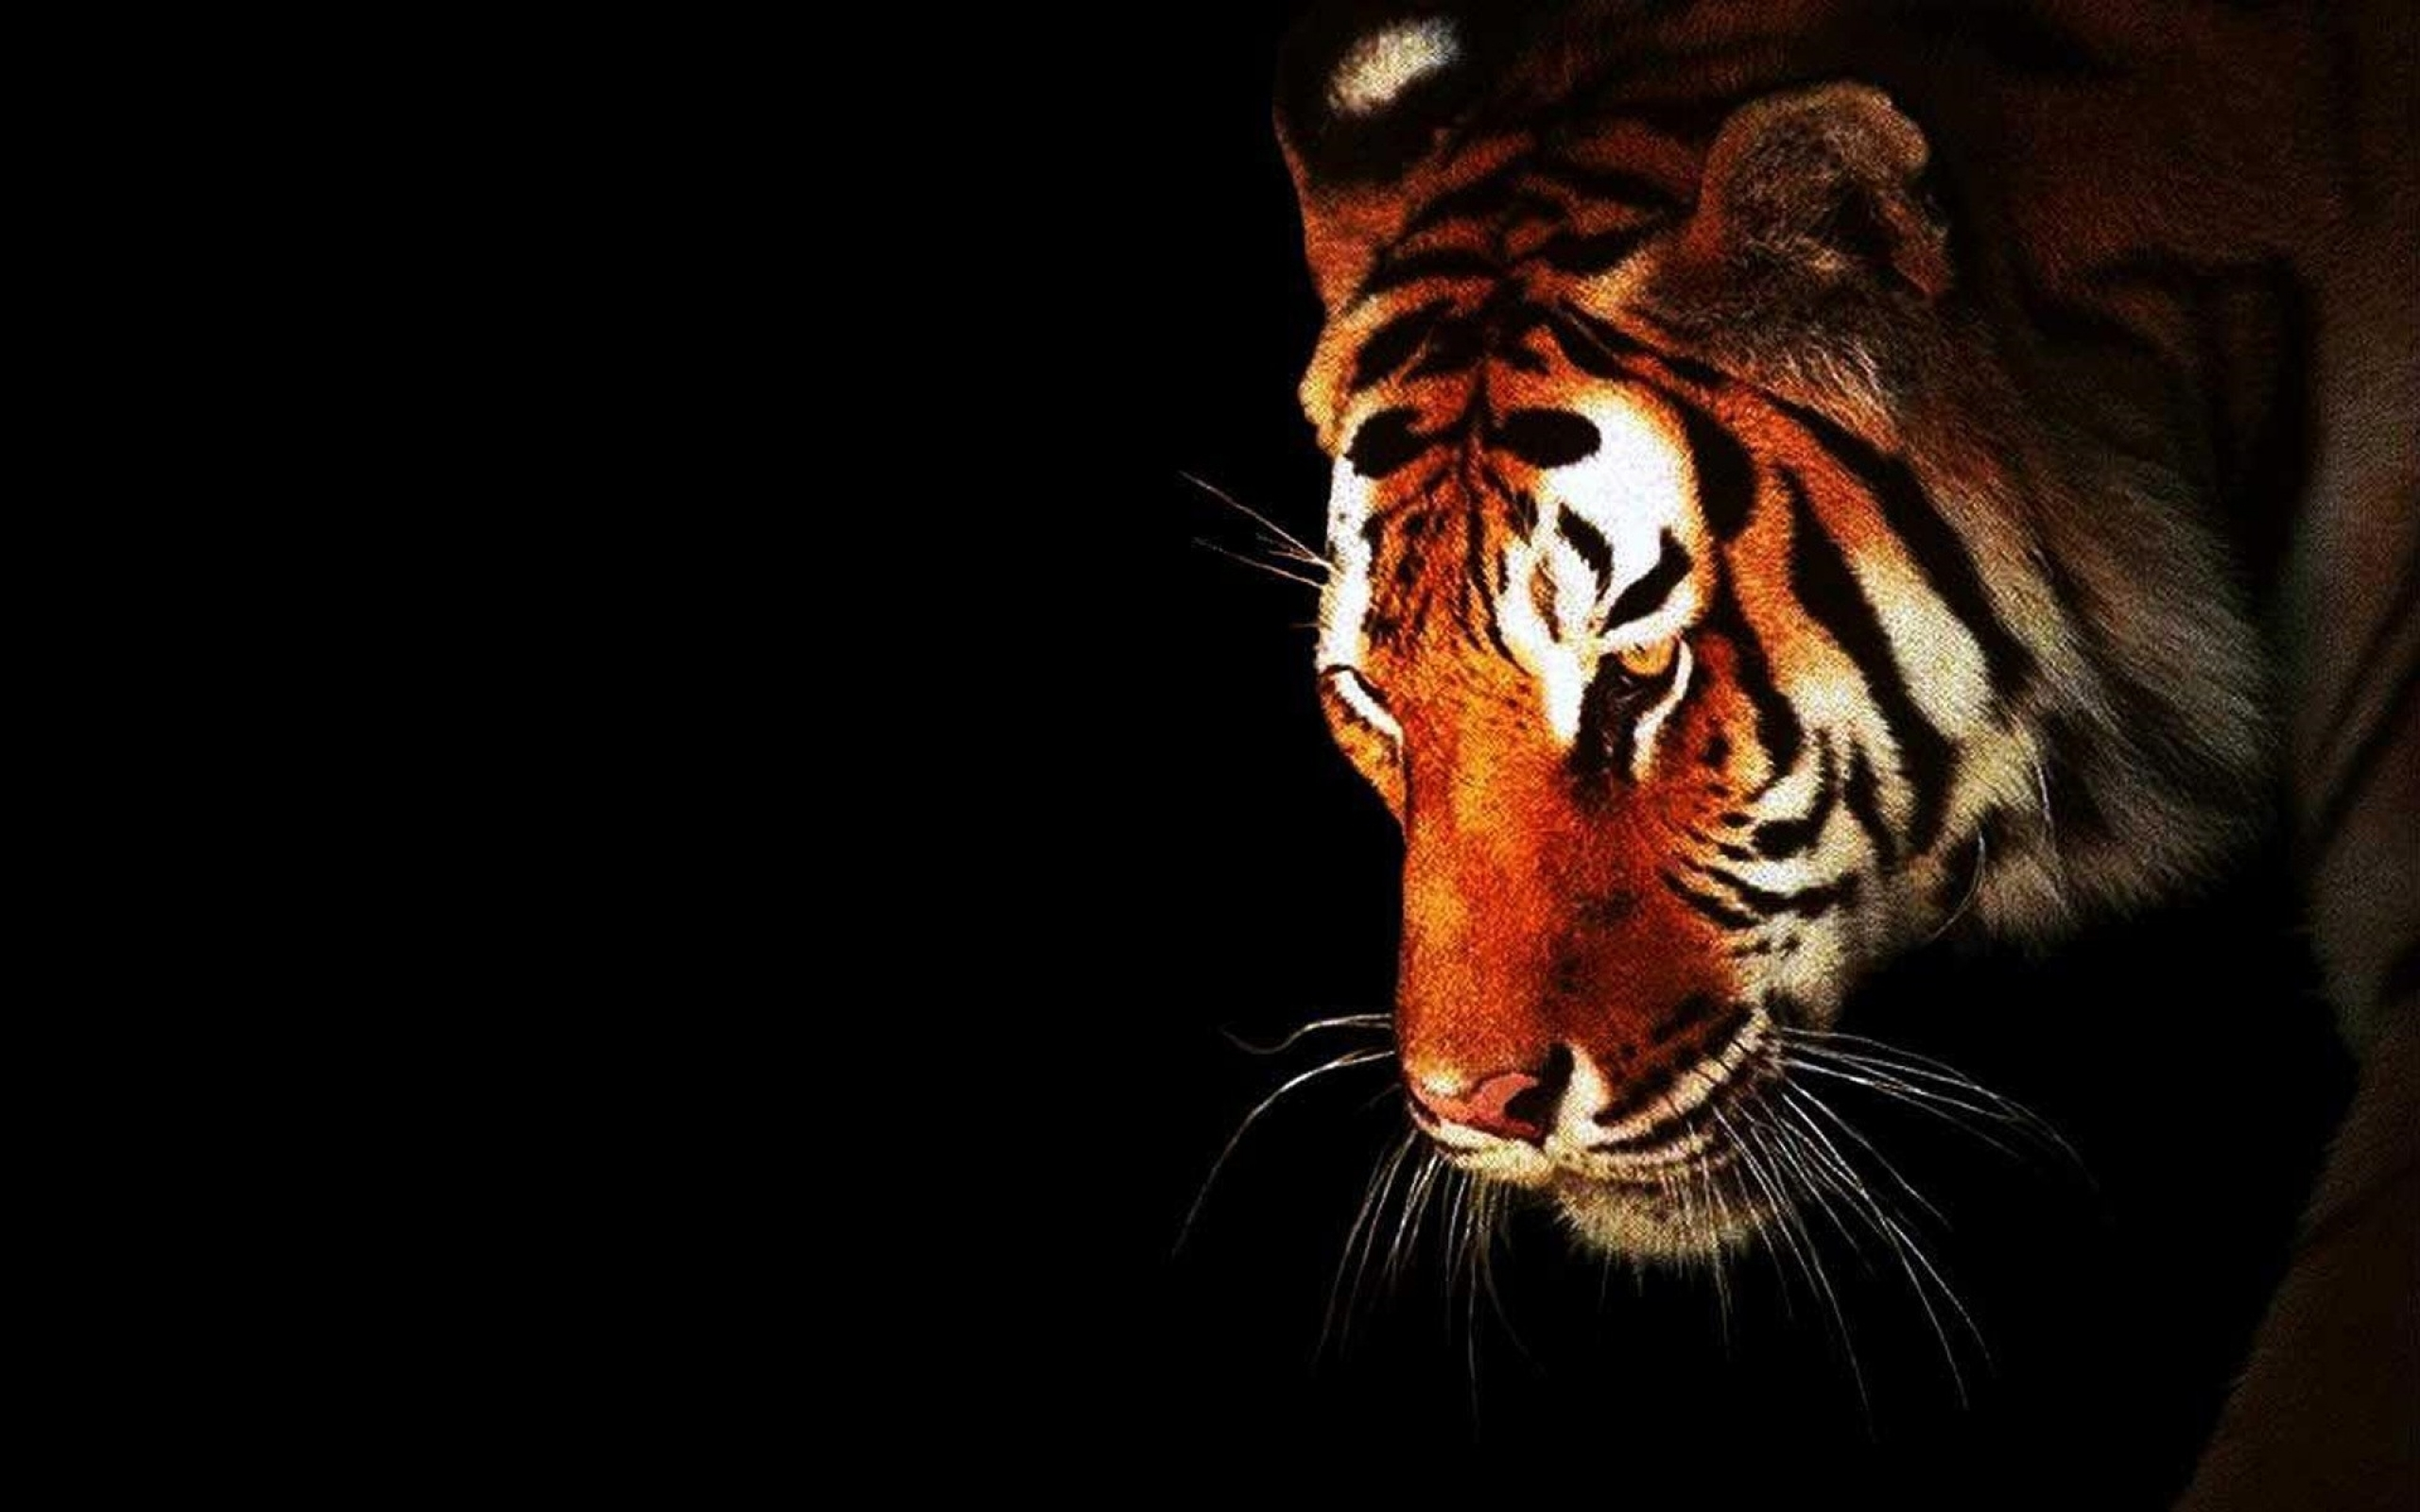 Tiger hd wallpaper background image 2560x1600 id 401669 wallpaper abyss - Tiger hd wallpaper for pc ...